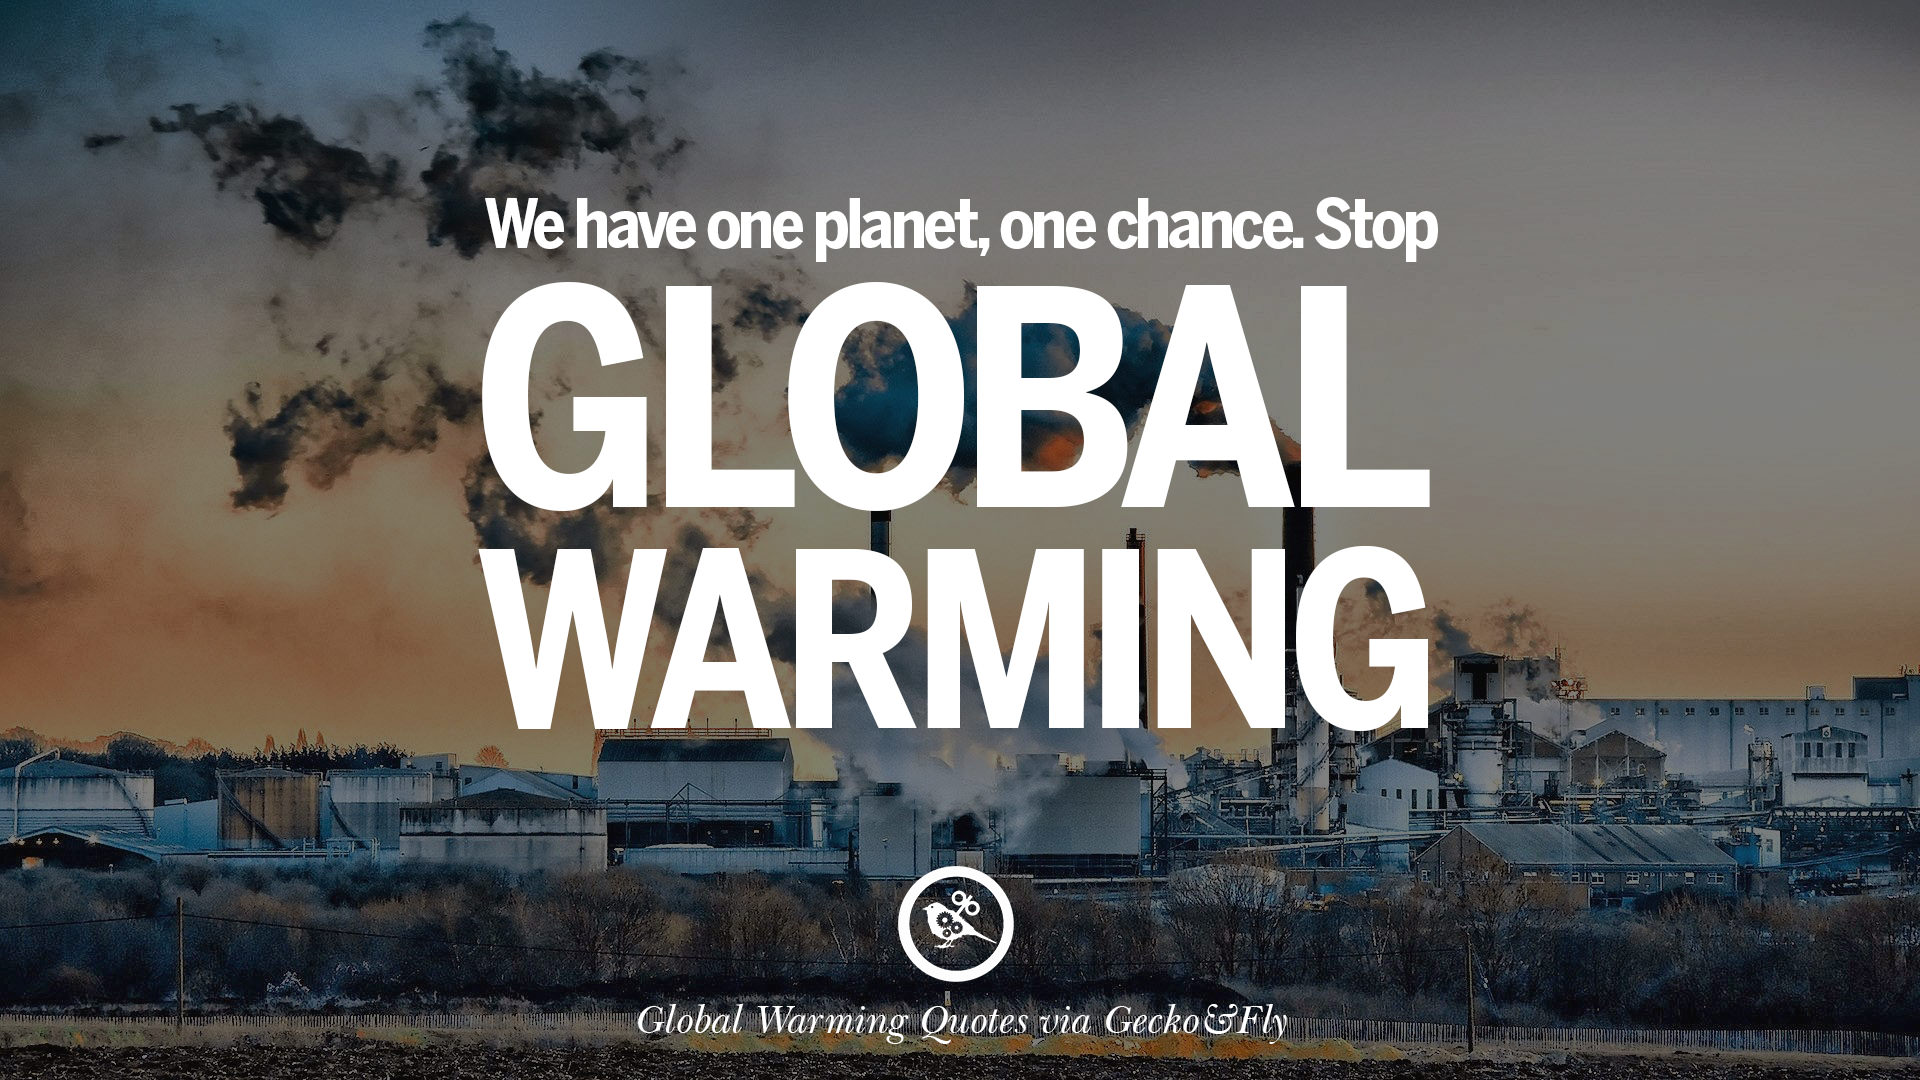 Global Warming Quotes 20 Global Warming Quotes About Carbon Dioxide Greenhouse Gases